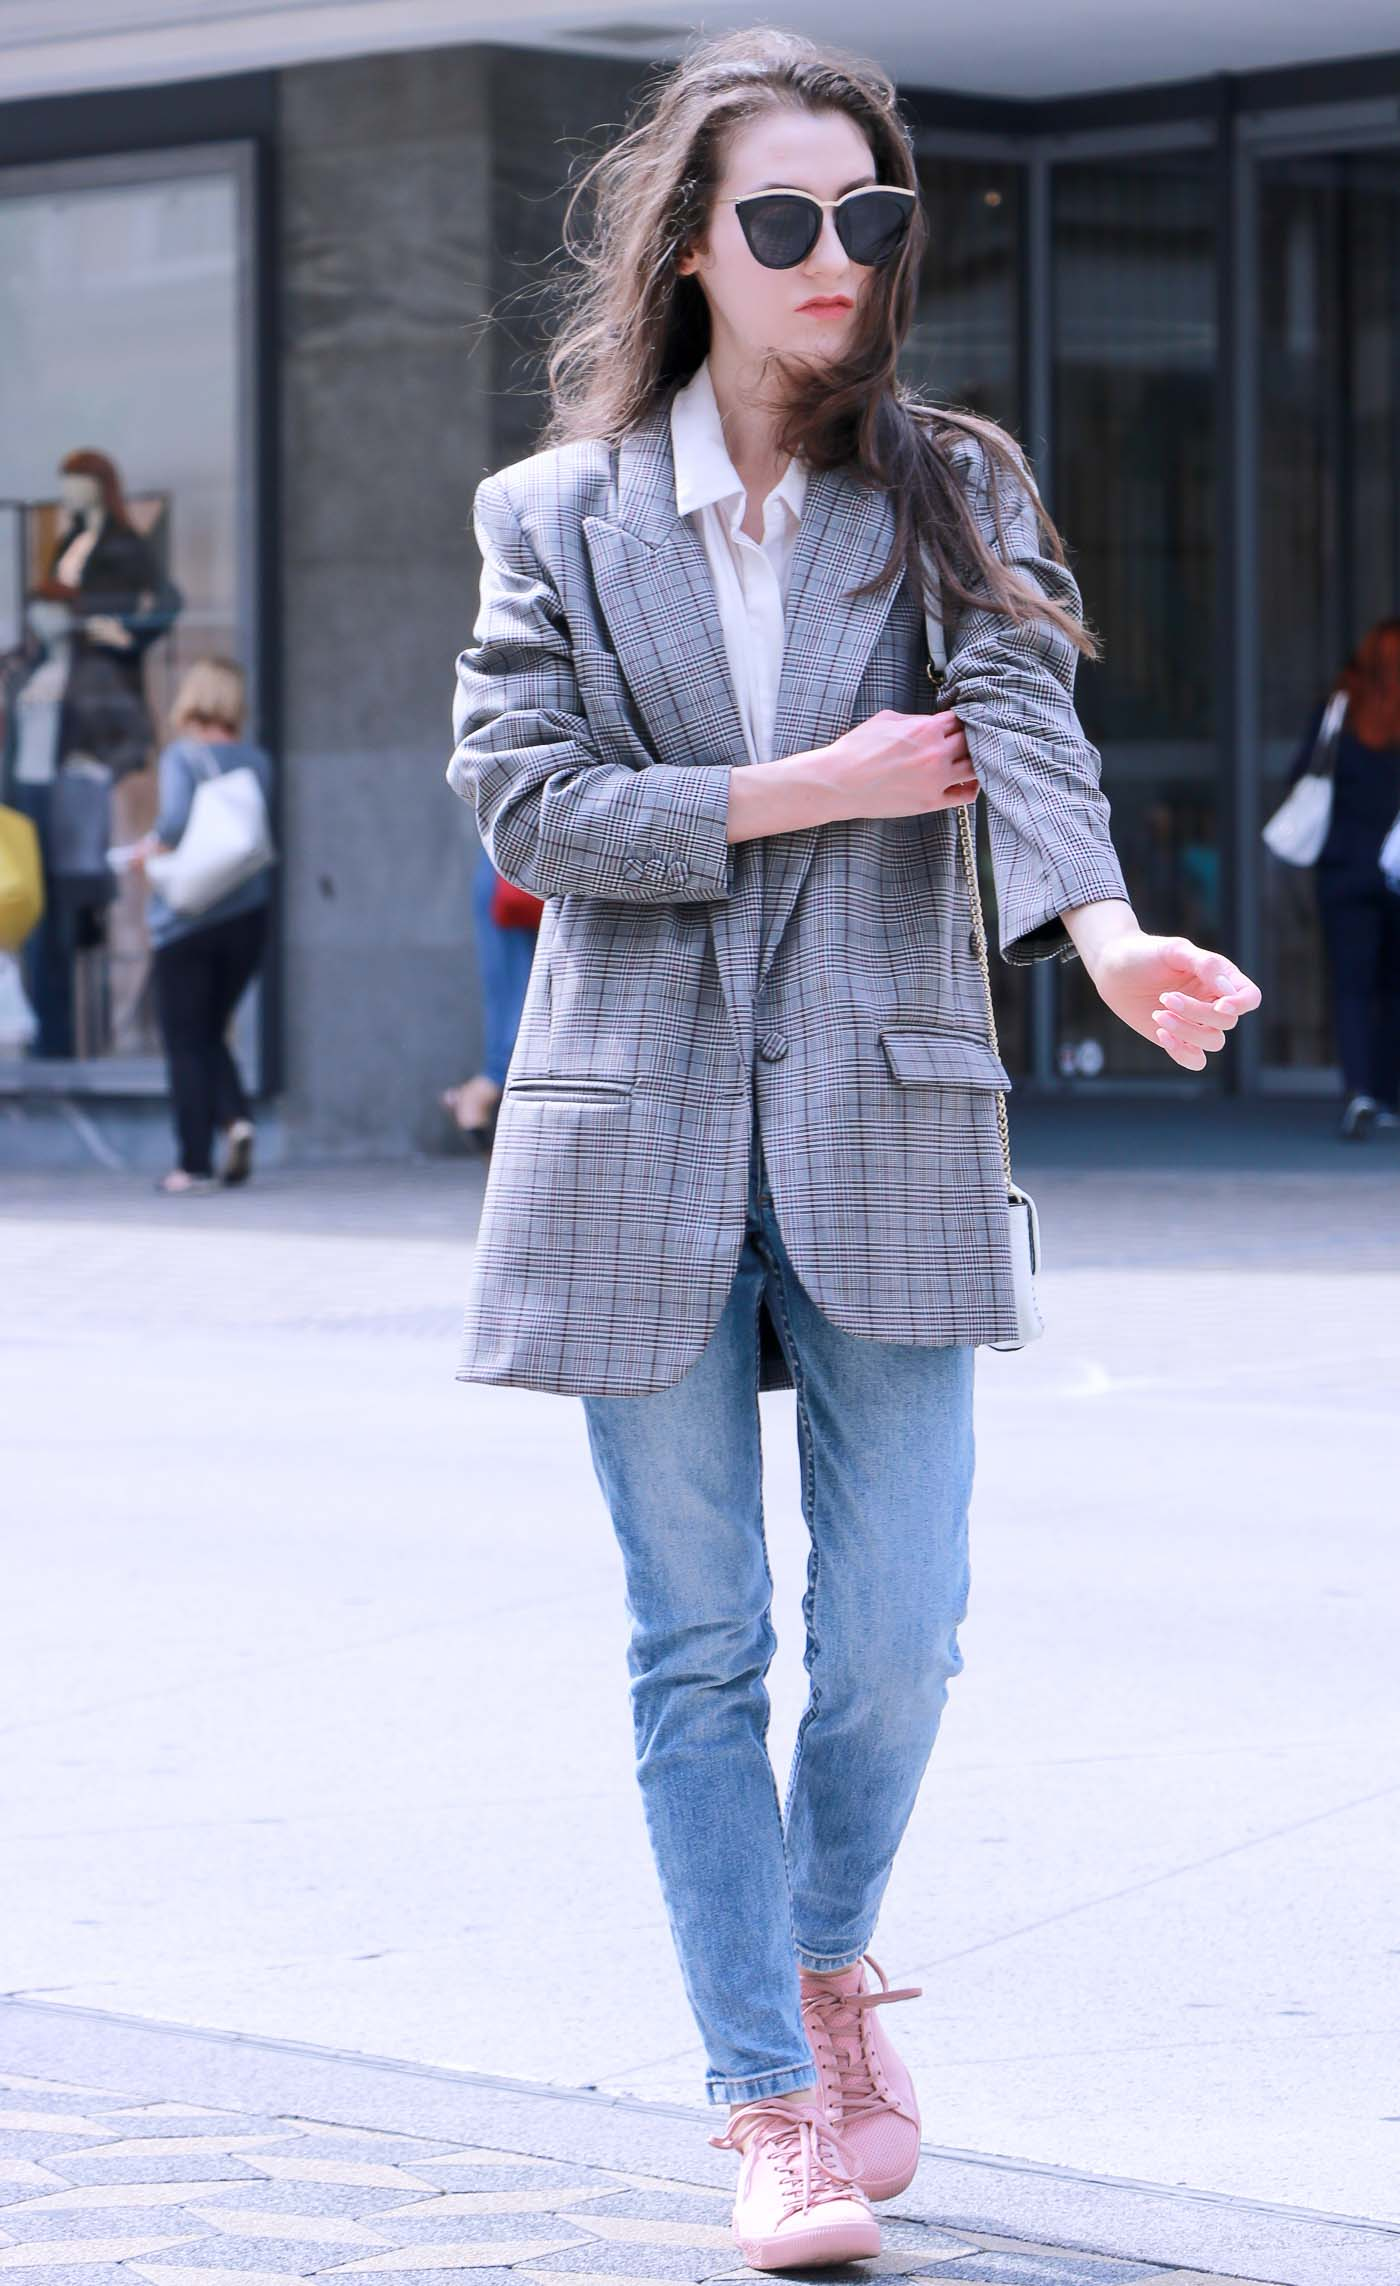 Fashion Blogger Veronika Lipar of Brunette from Wall Street sharing what to wear to the city this fall